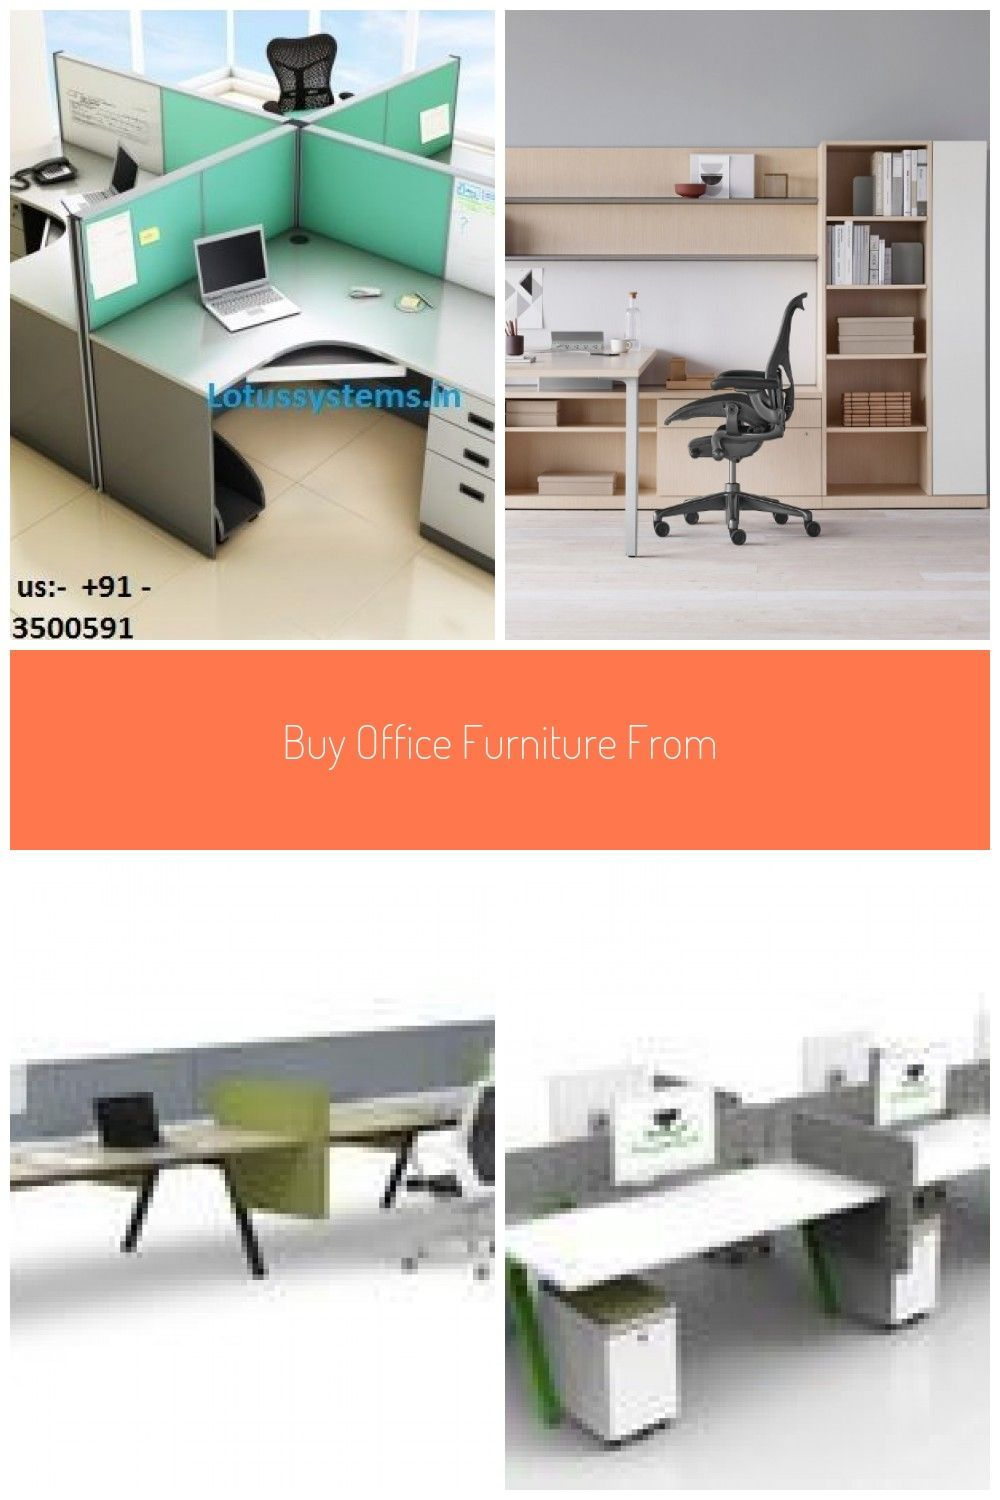 Buy Office Furniture From Best Modular Office Furniture Manufacturers In Noida Buy Cheapofficefurnit Mit Bildern